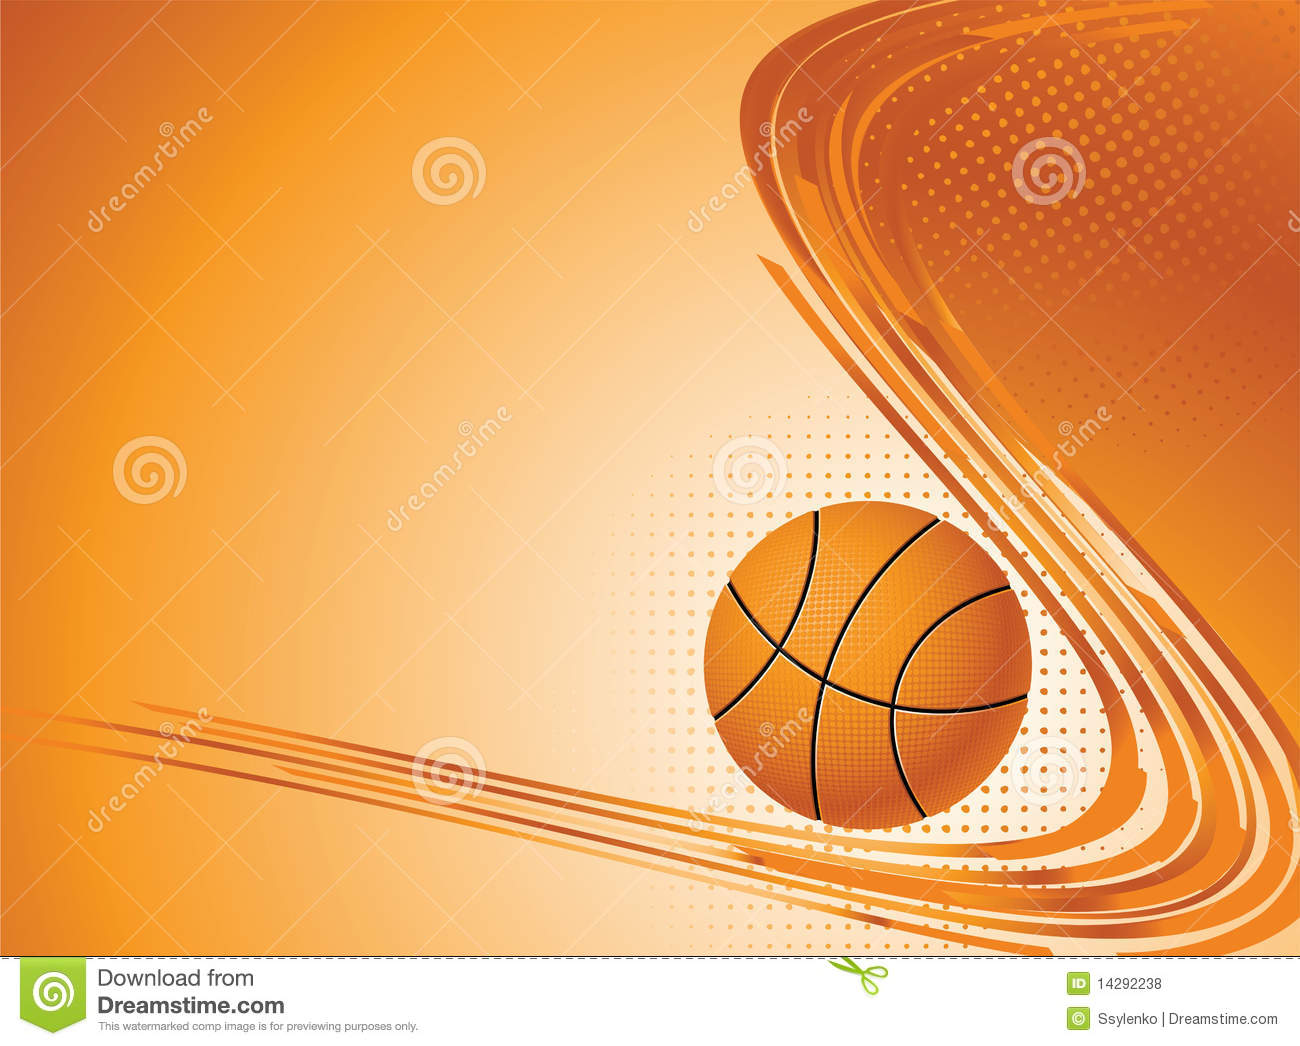 Abstract Background With Sport Icons Royalty Free Vector: Abstract Sport Background. Stock Vector. Image Of Burnt